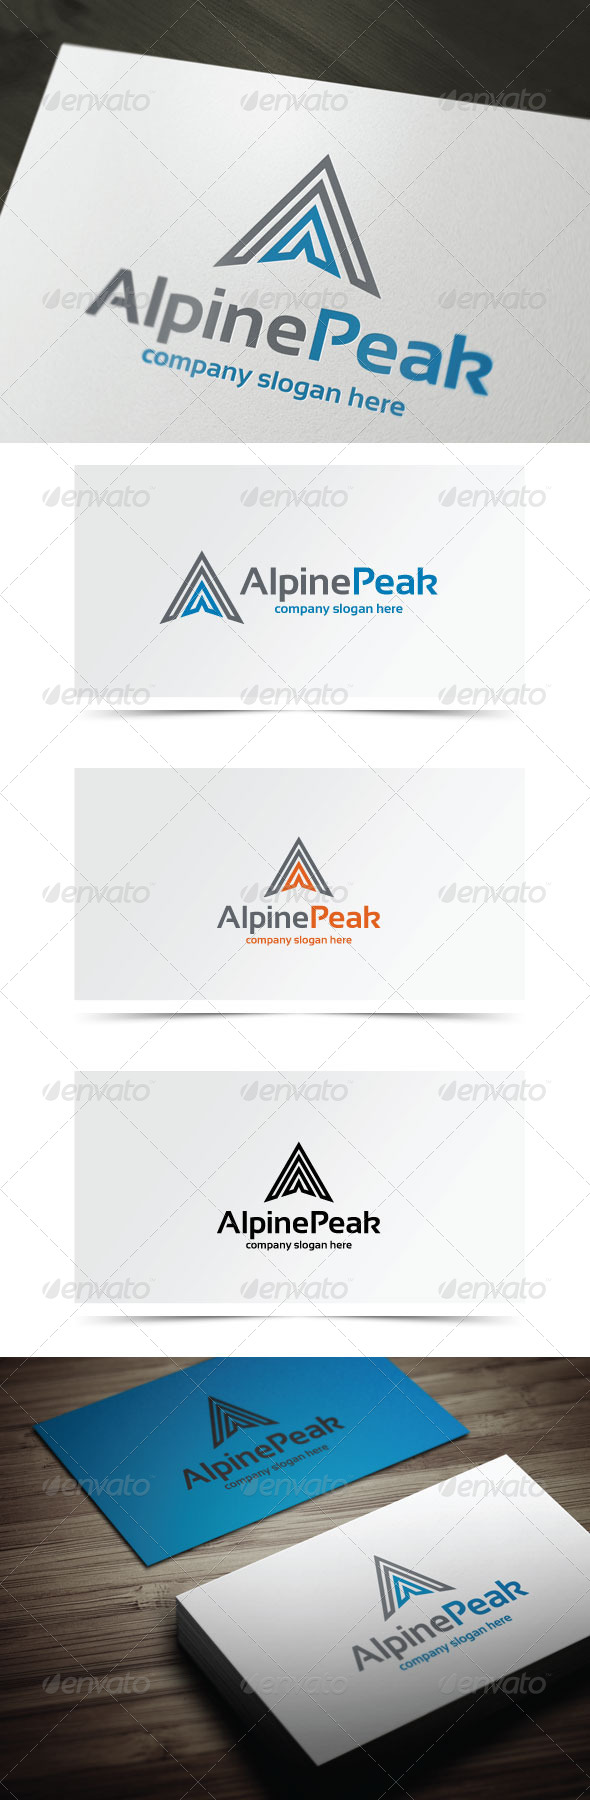 GraphicRiver Alpine Peak 6418180